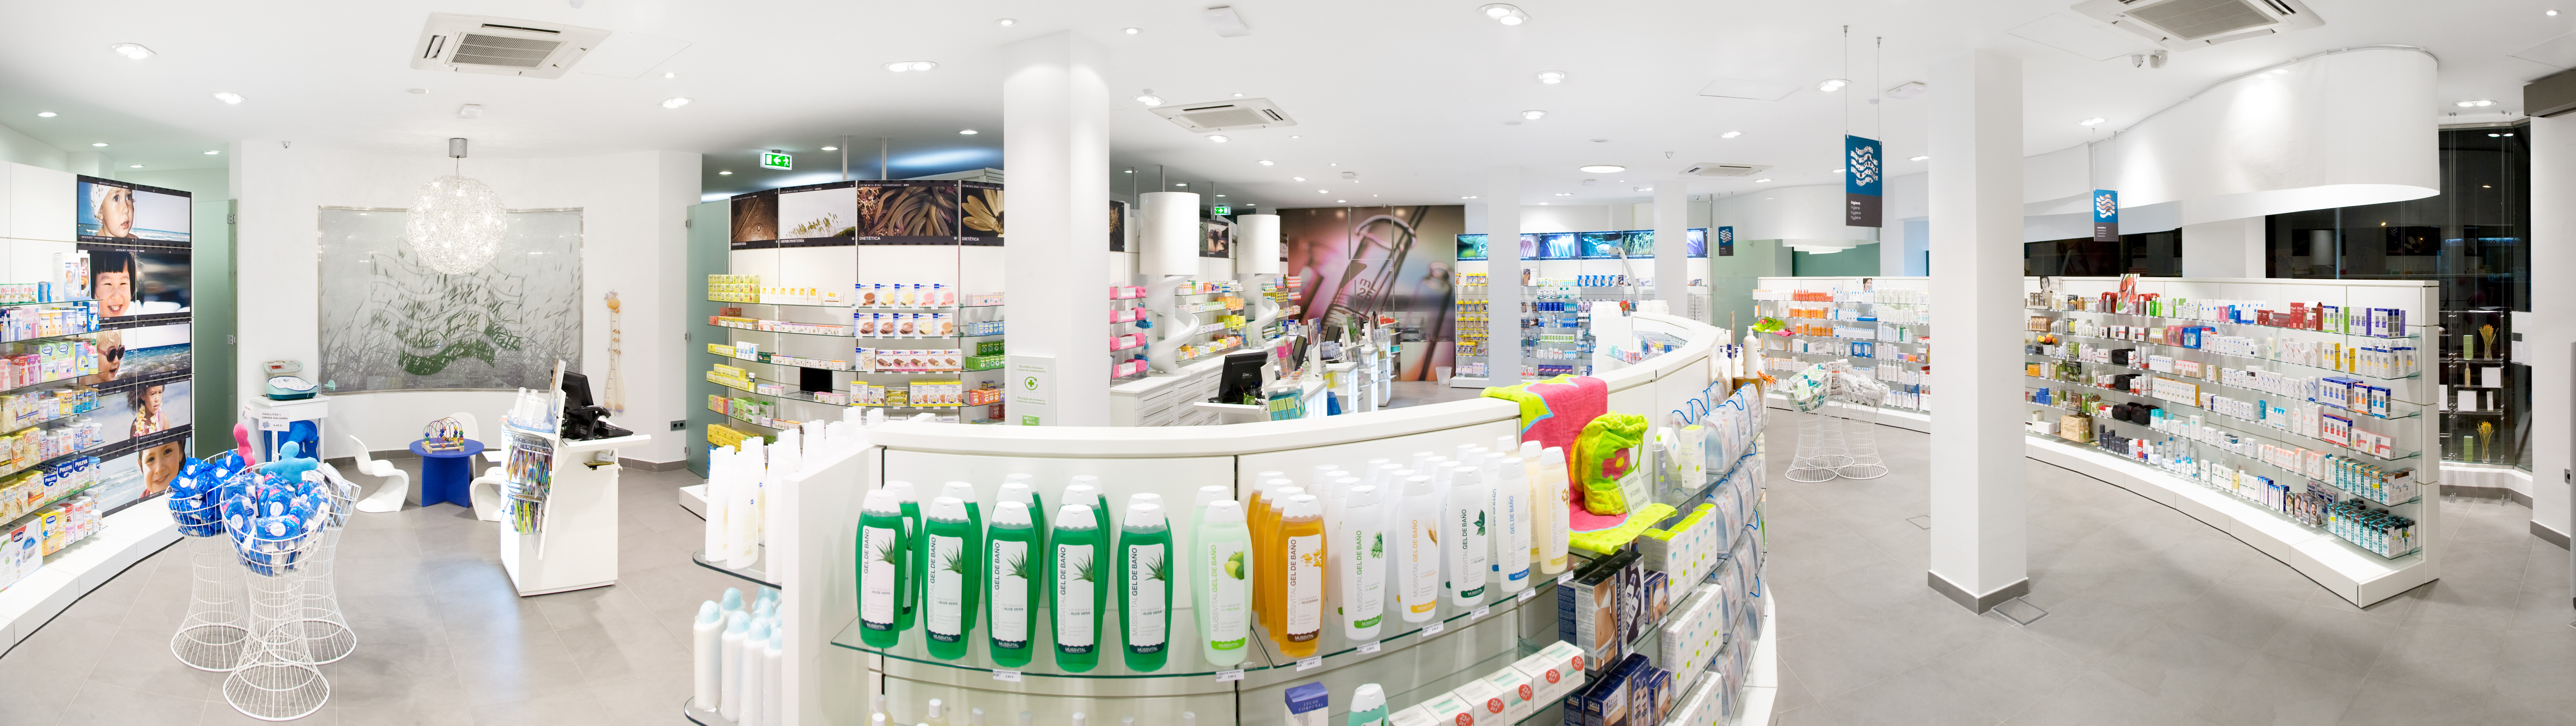 en la farmacia - Proyecto Farmacia - Marketing y Branding de farmacia ...